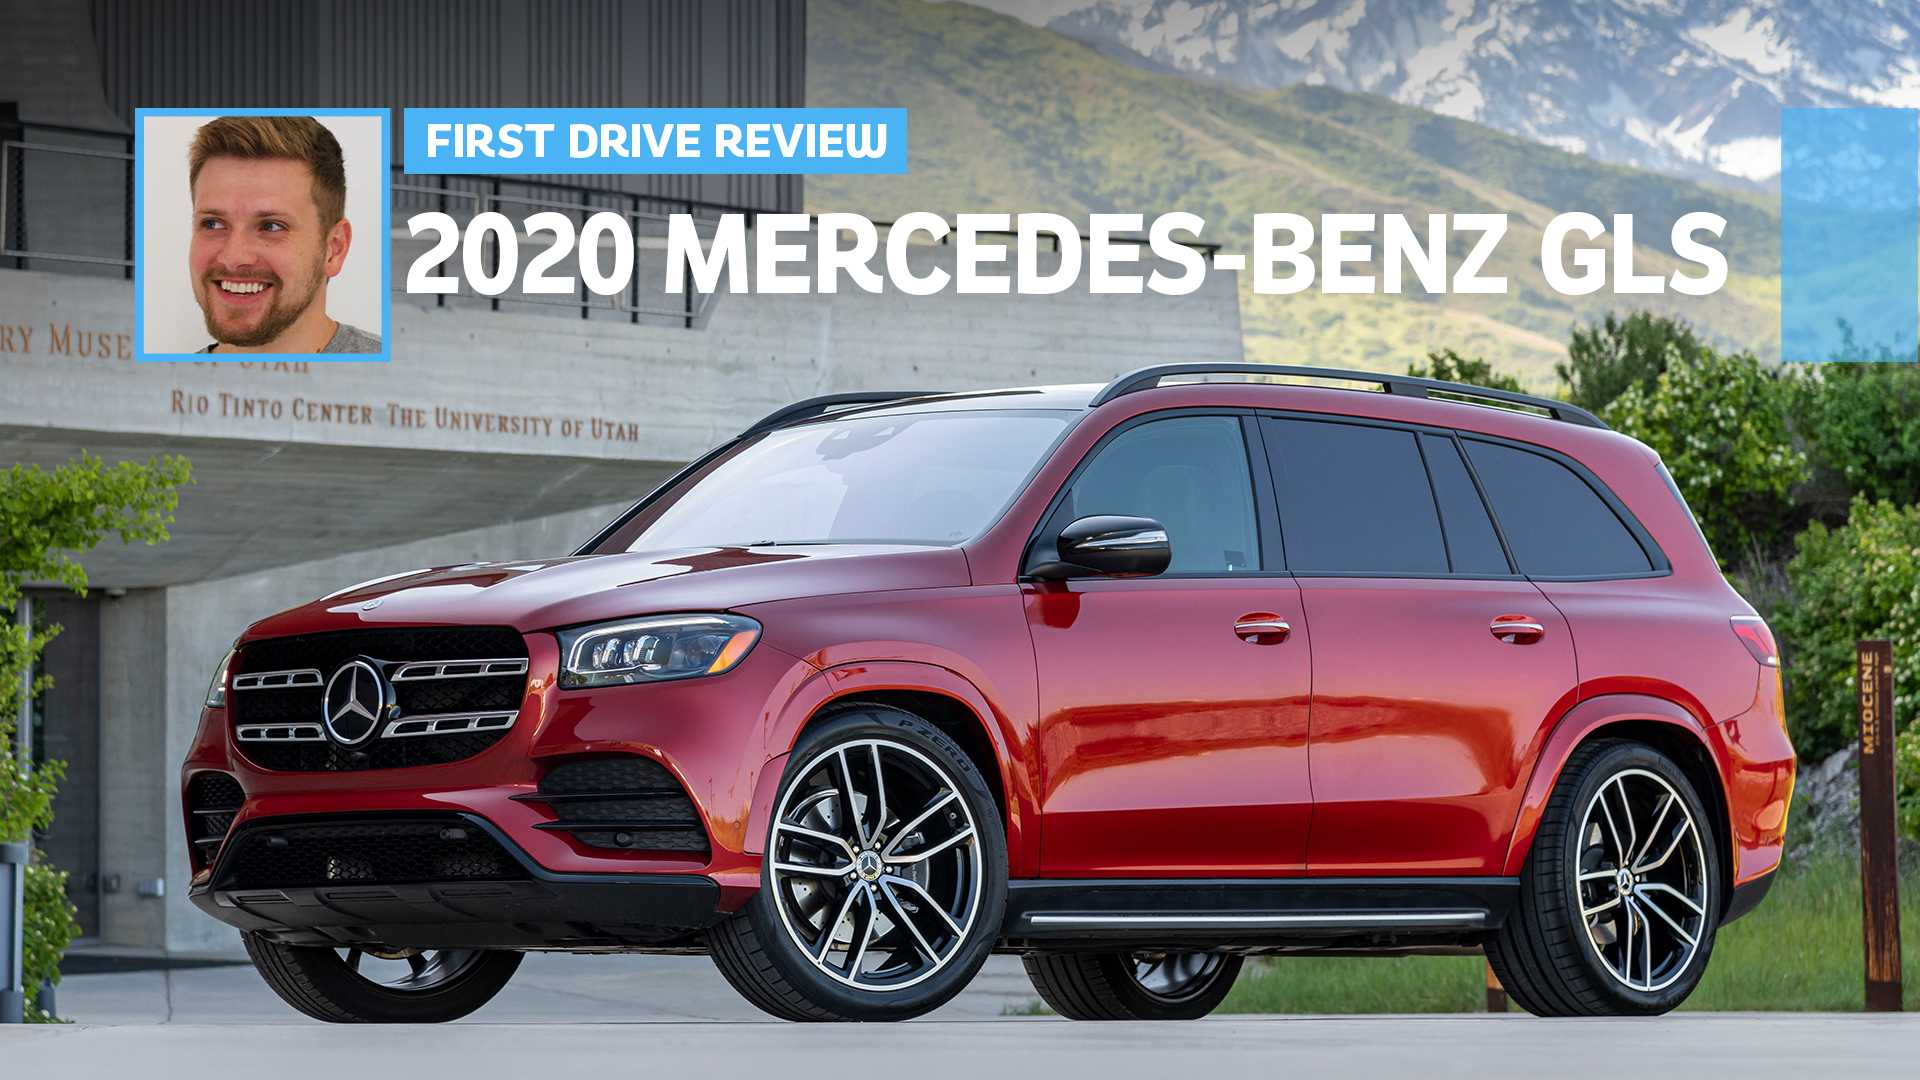 2020 Best Android Tablet 2020 Mercedes Benz GLS First Drive: Best A Benz Can Get